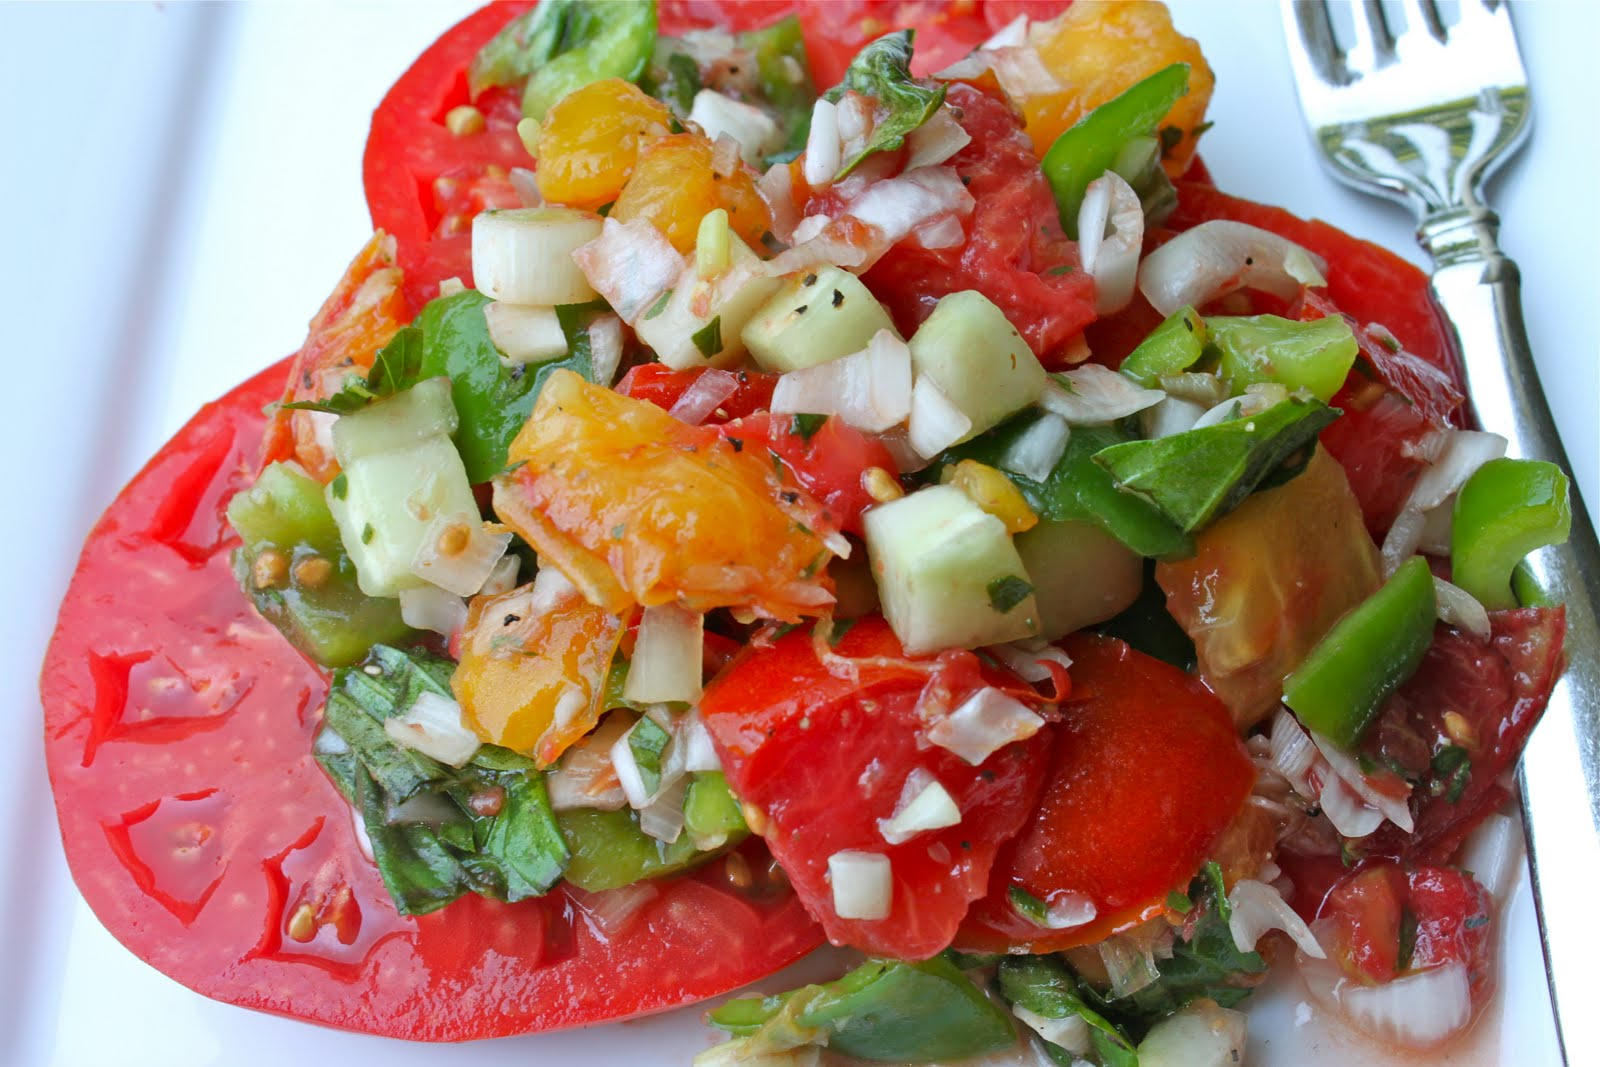 Cucina Antica Tomato Basil Heb Garden Fresh Heirloom Tomato Pepper And Cucumber Salad